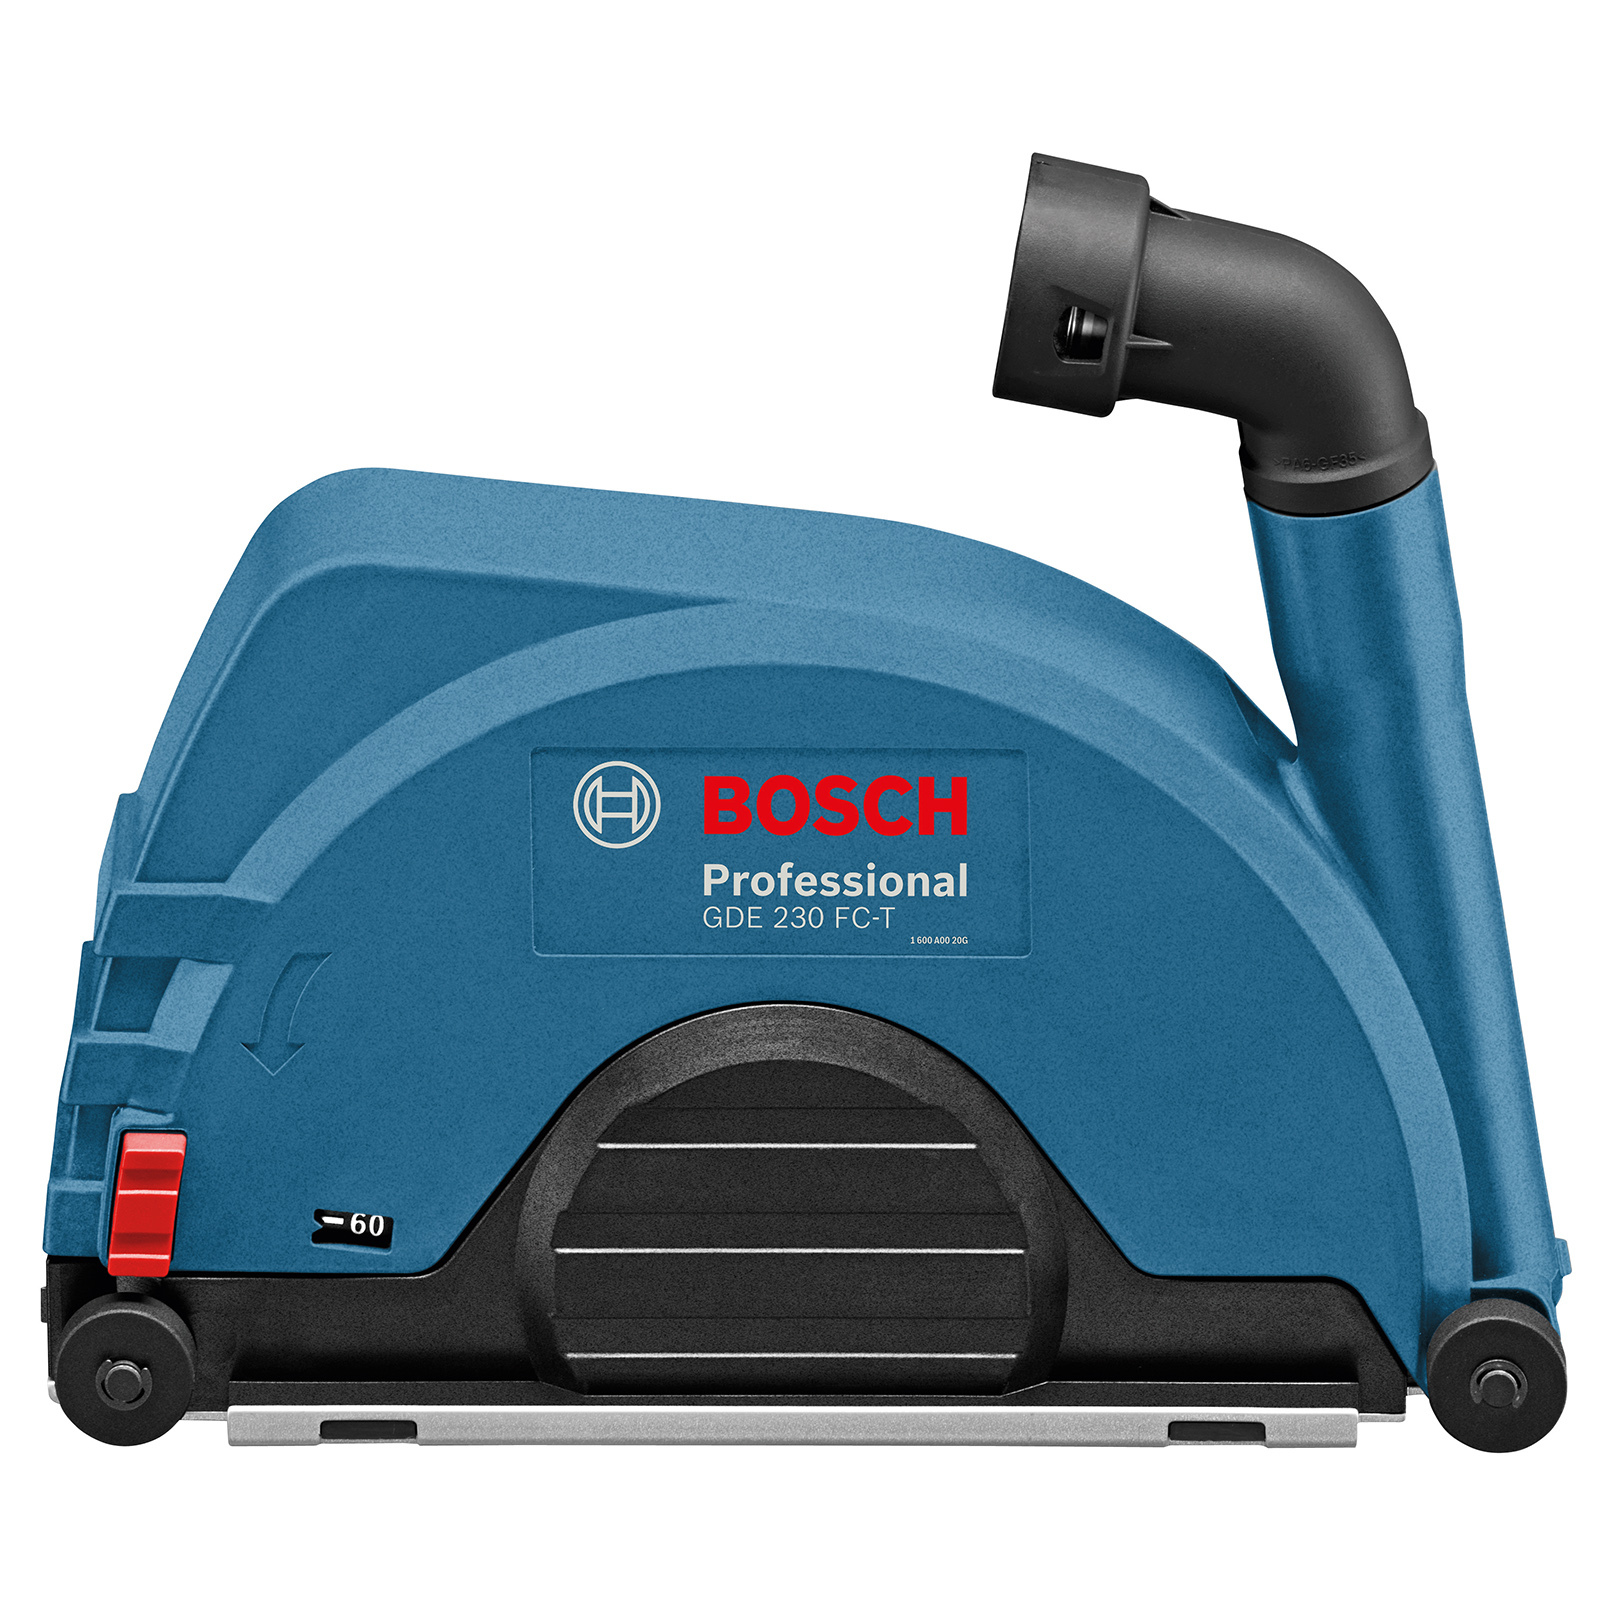 Bosch 230mm GDE 230 FC-T Dust Extraction Cutting Guard For Angle Grinders